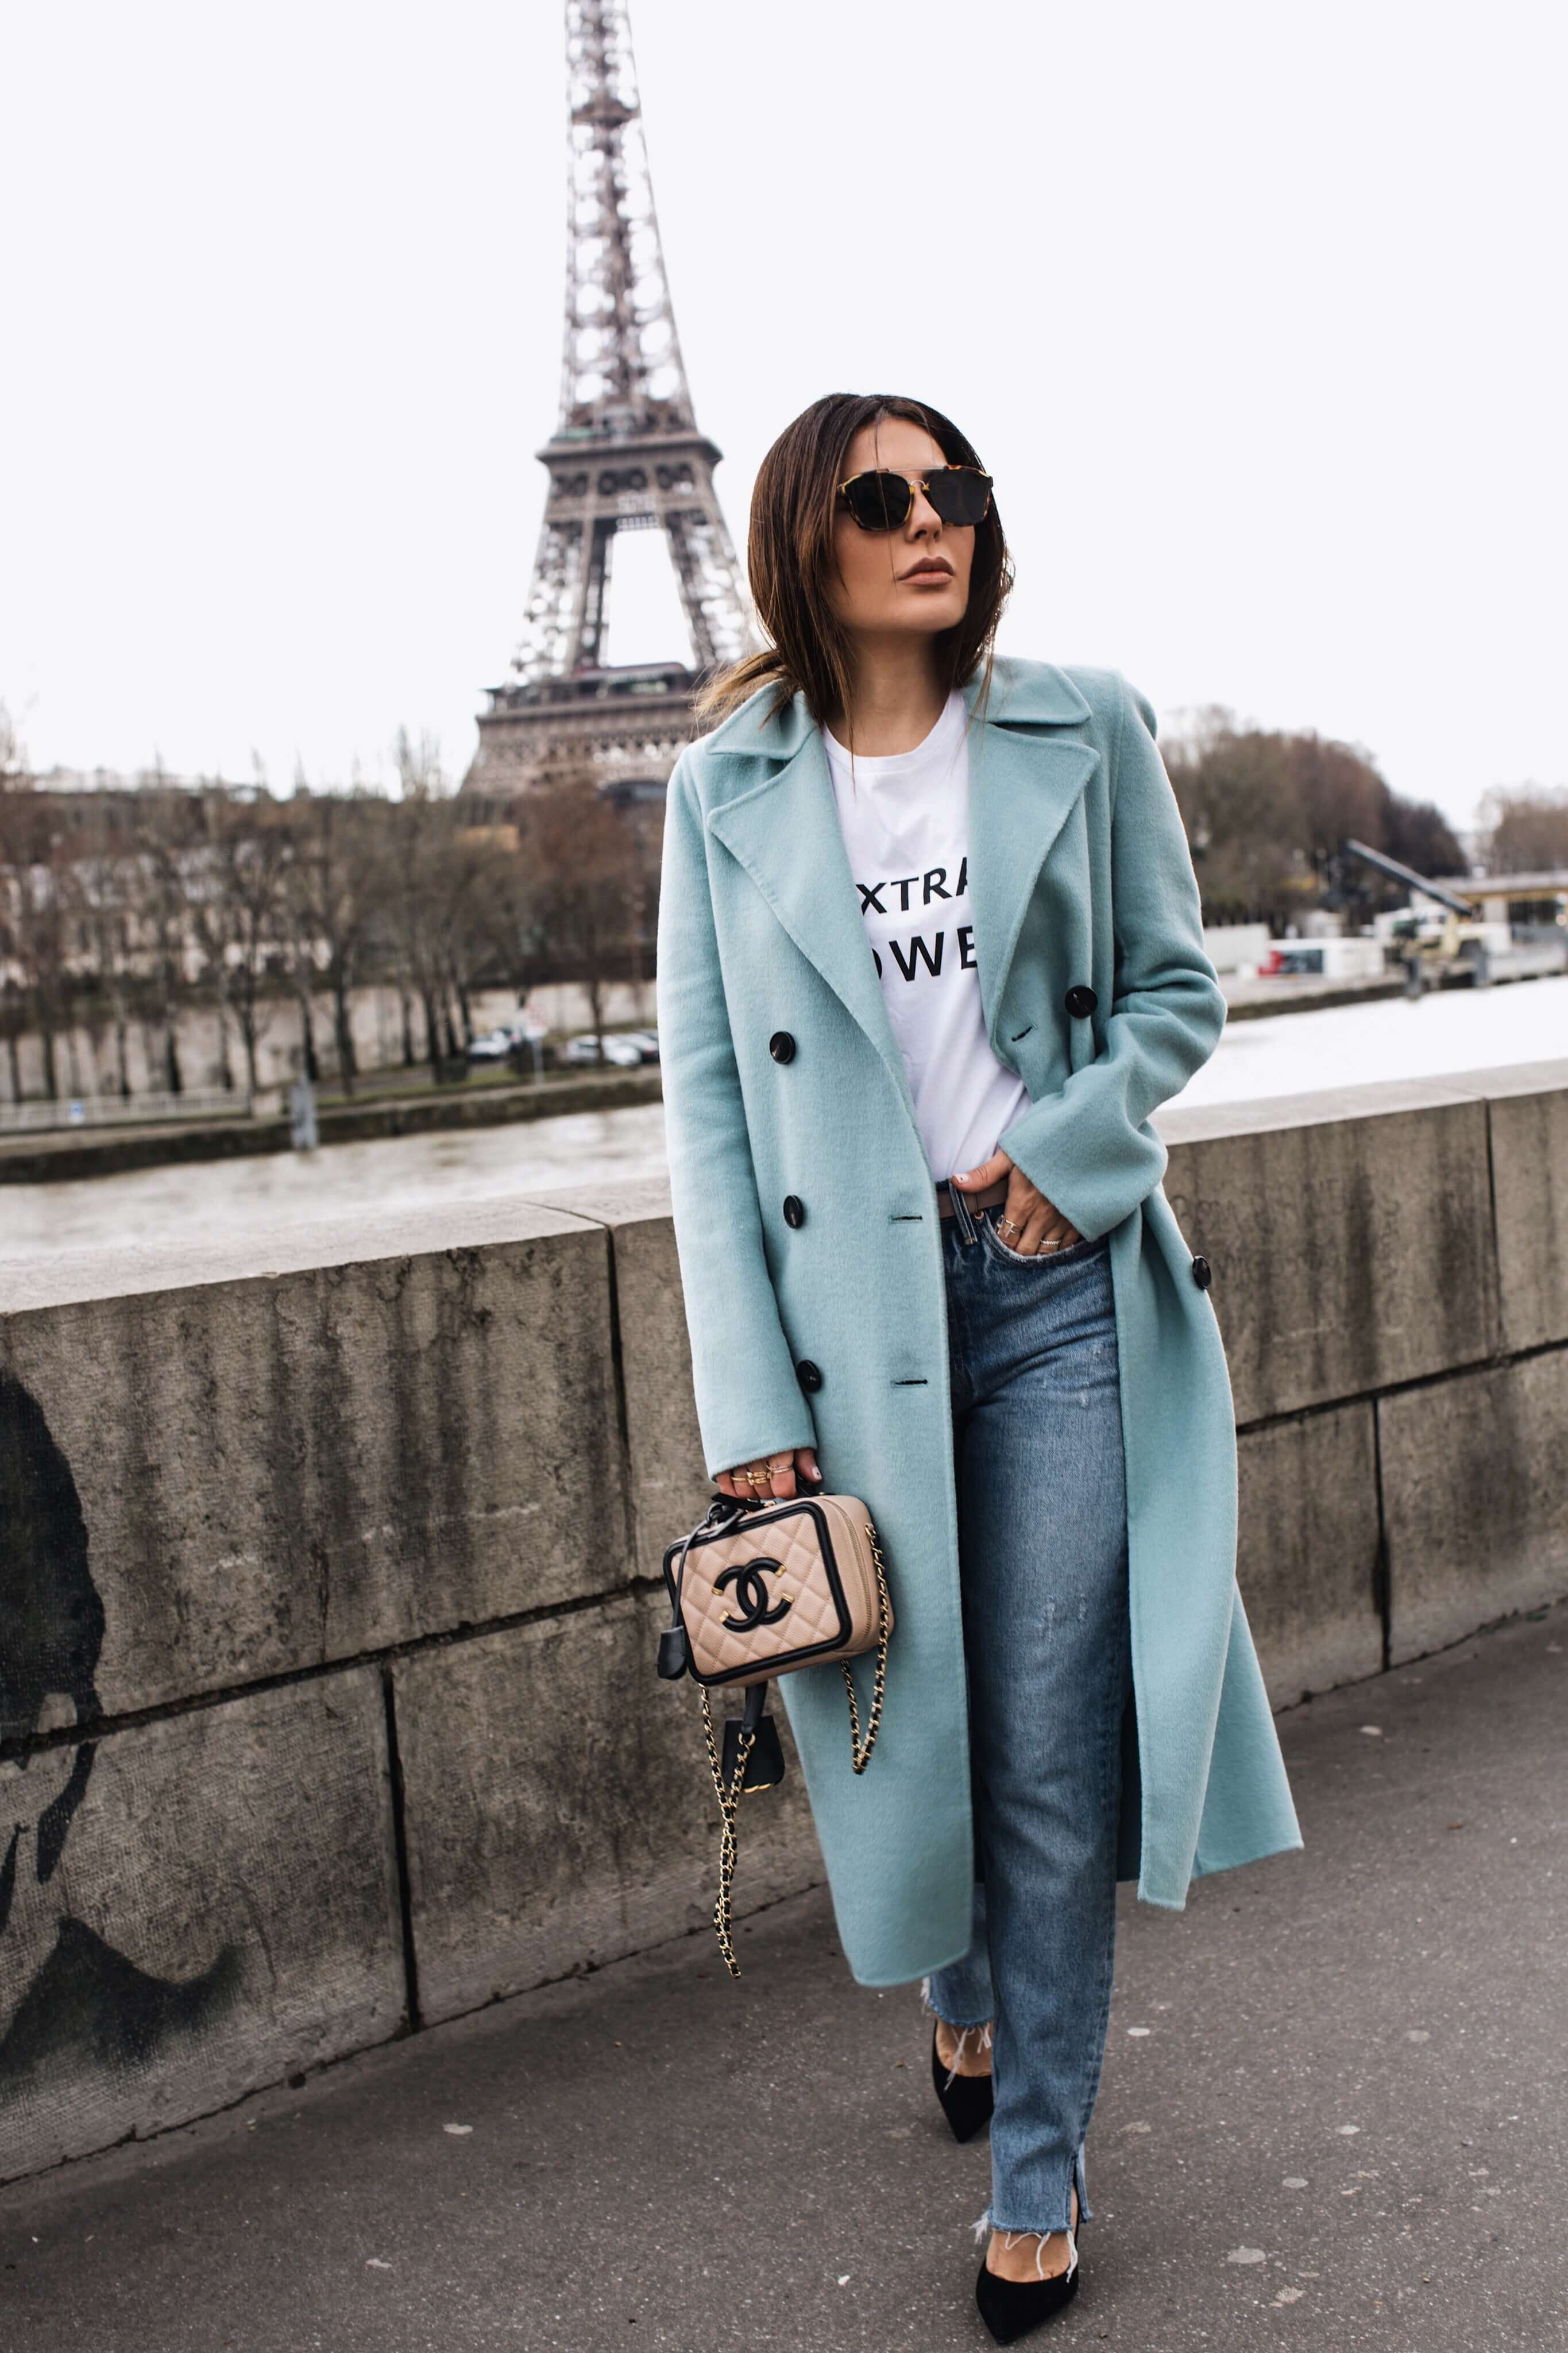 sona gasparain in paris, french style tips